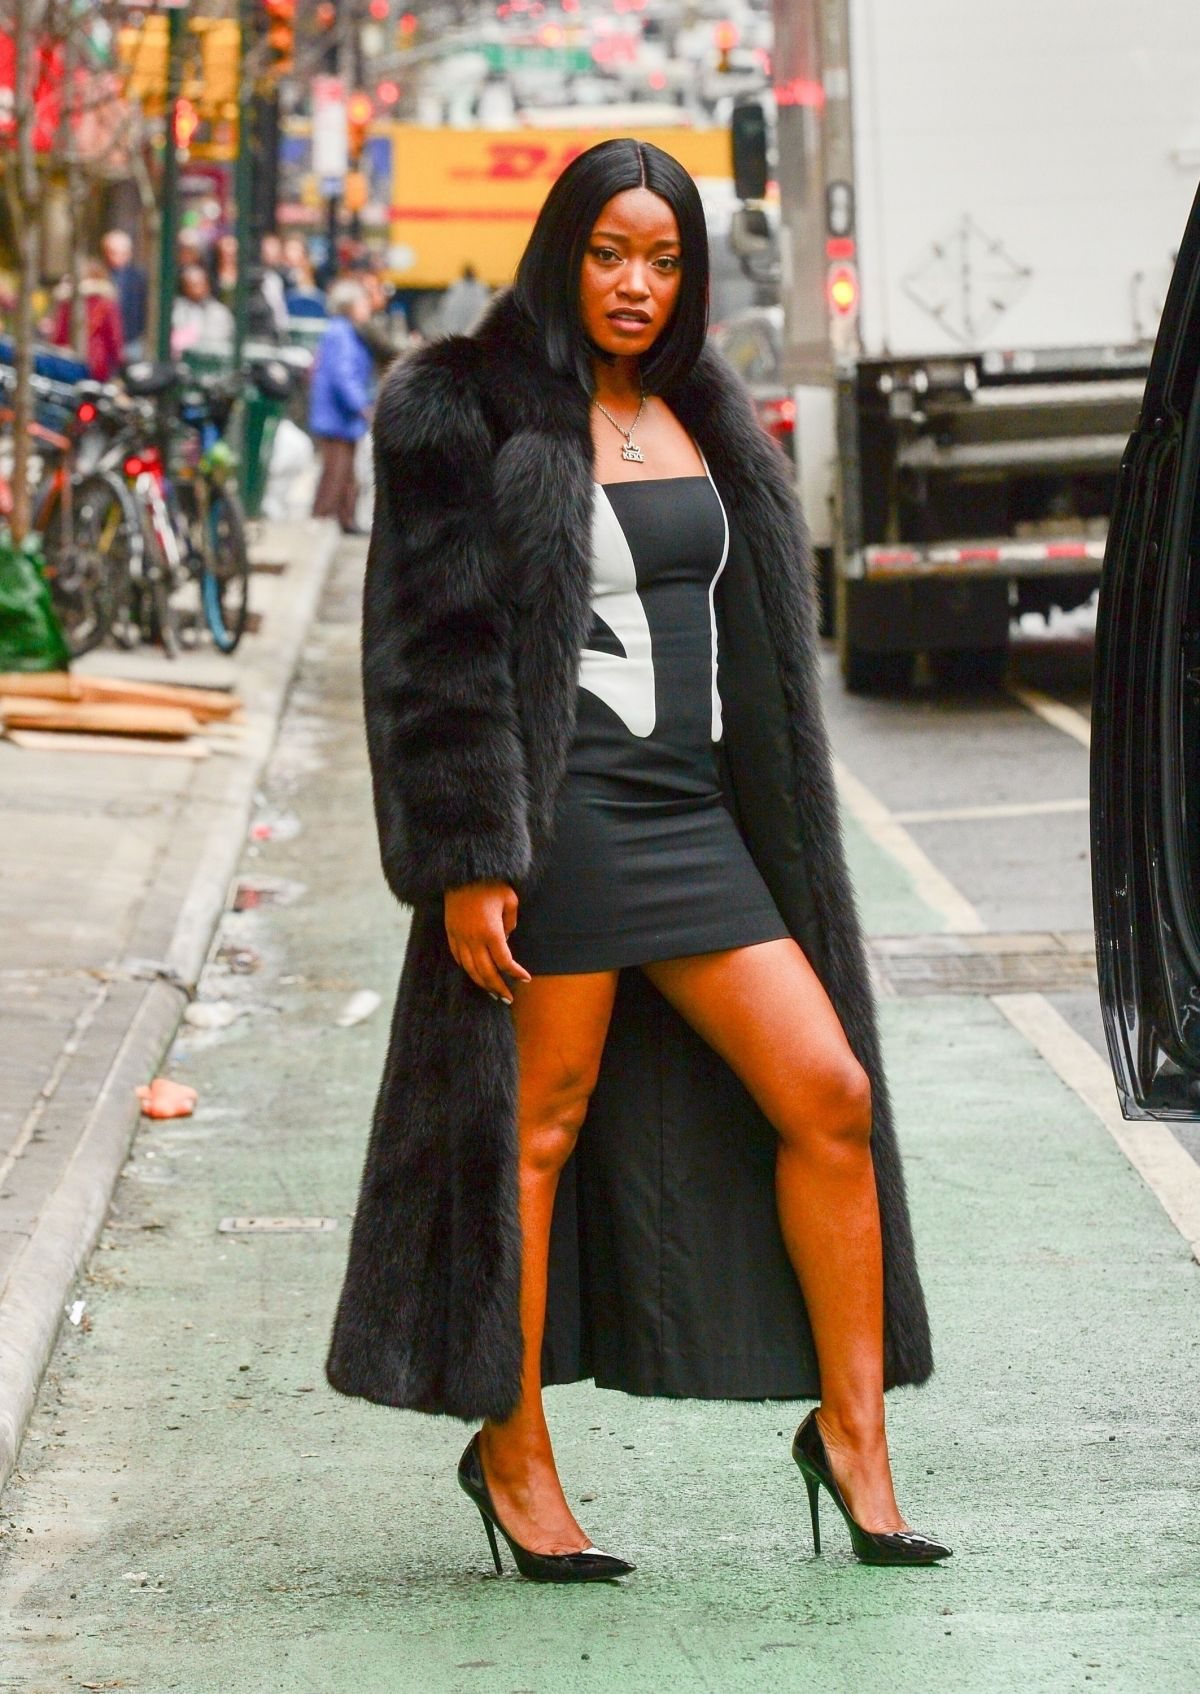 Keke Palmer Out in New York City - Celebzz - Celebzz